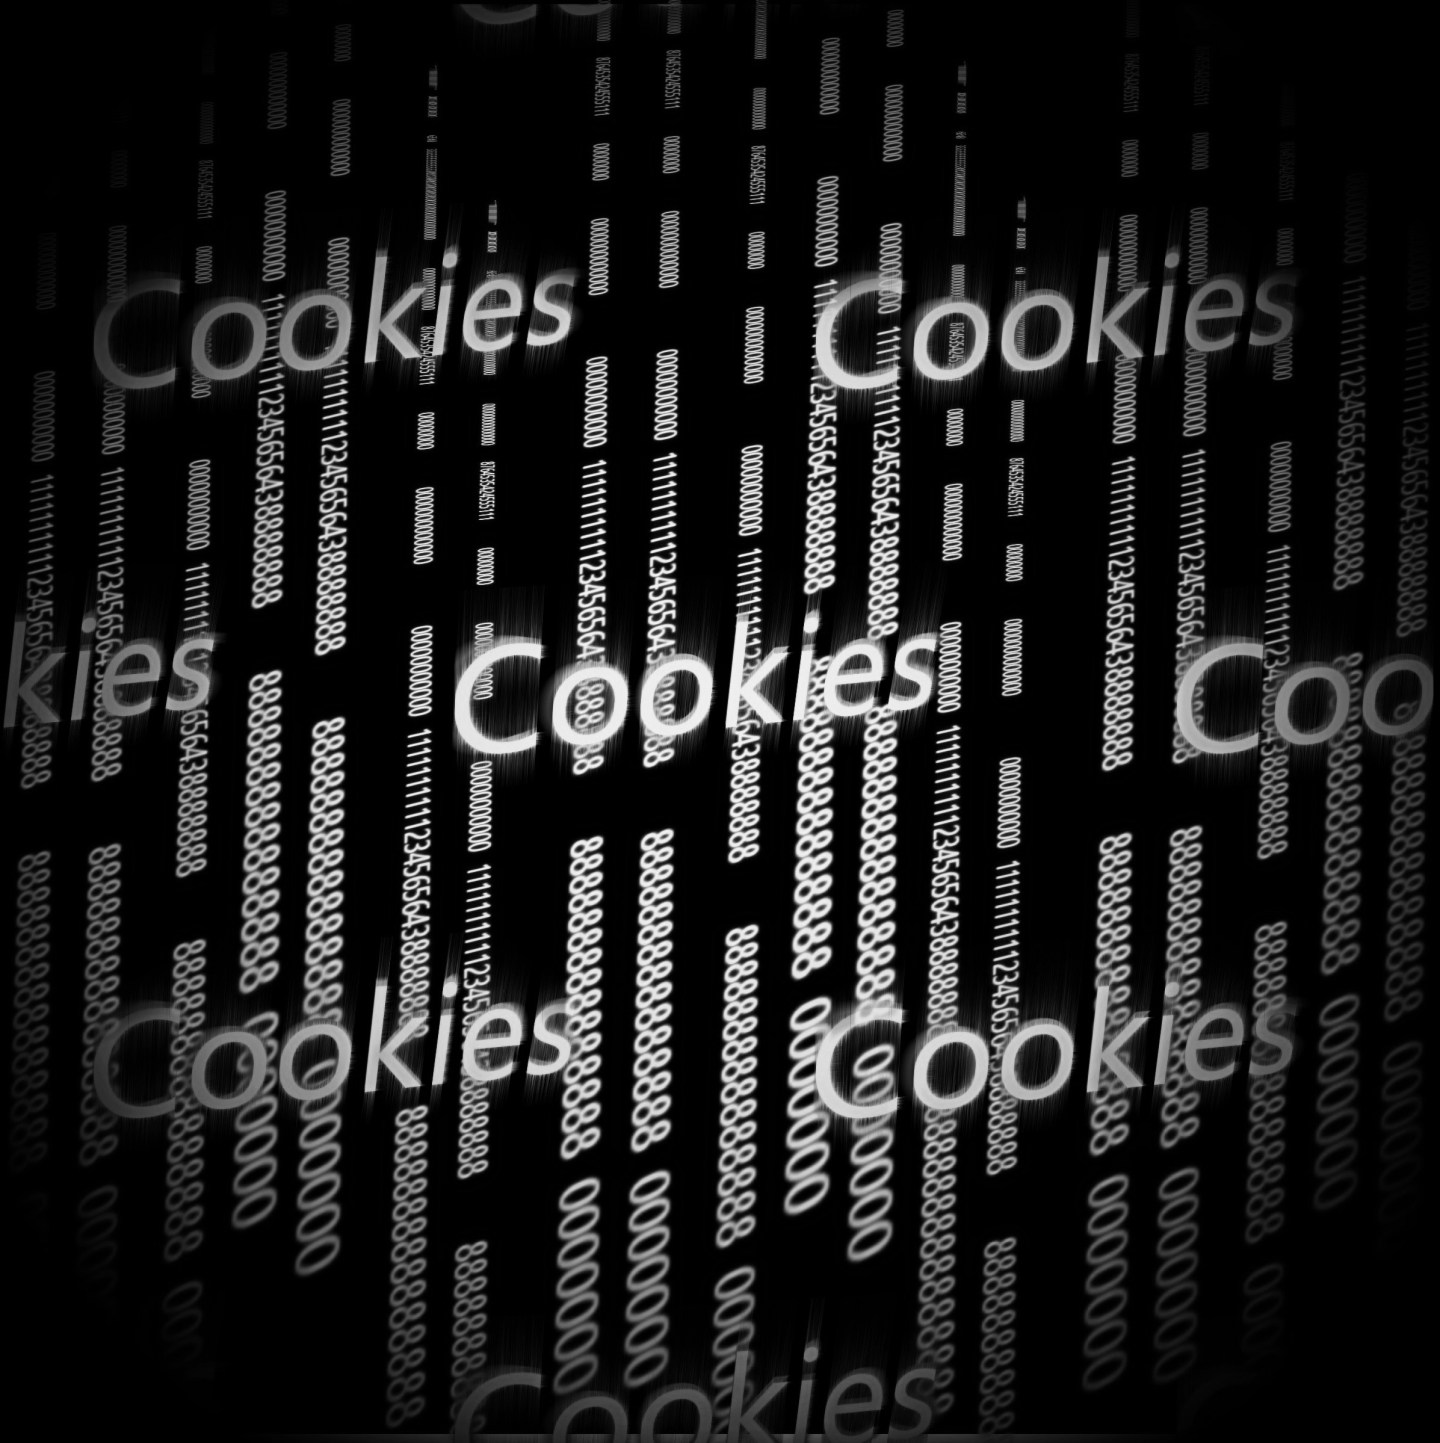 How to set up a cookieless domain